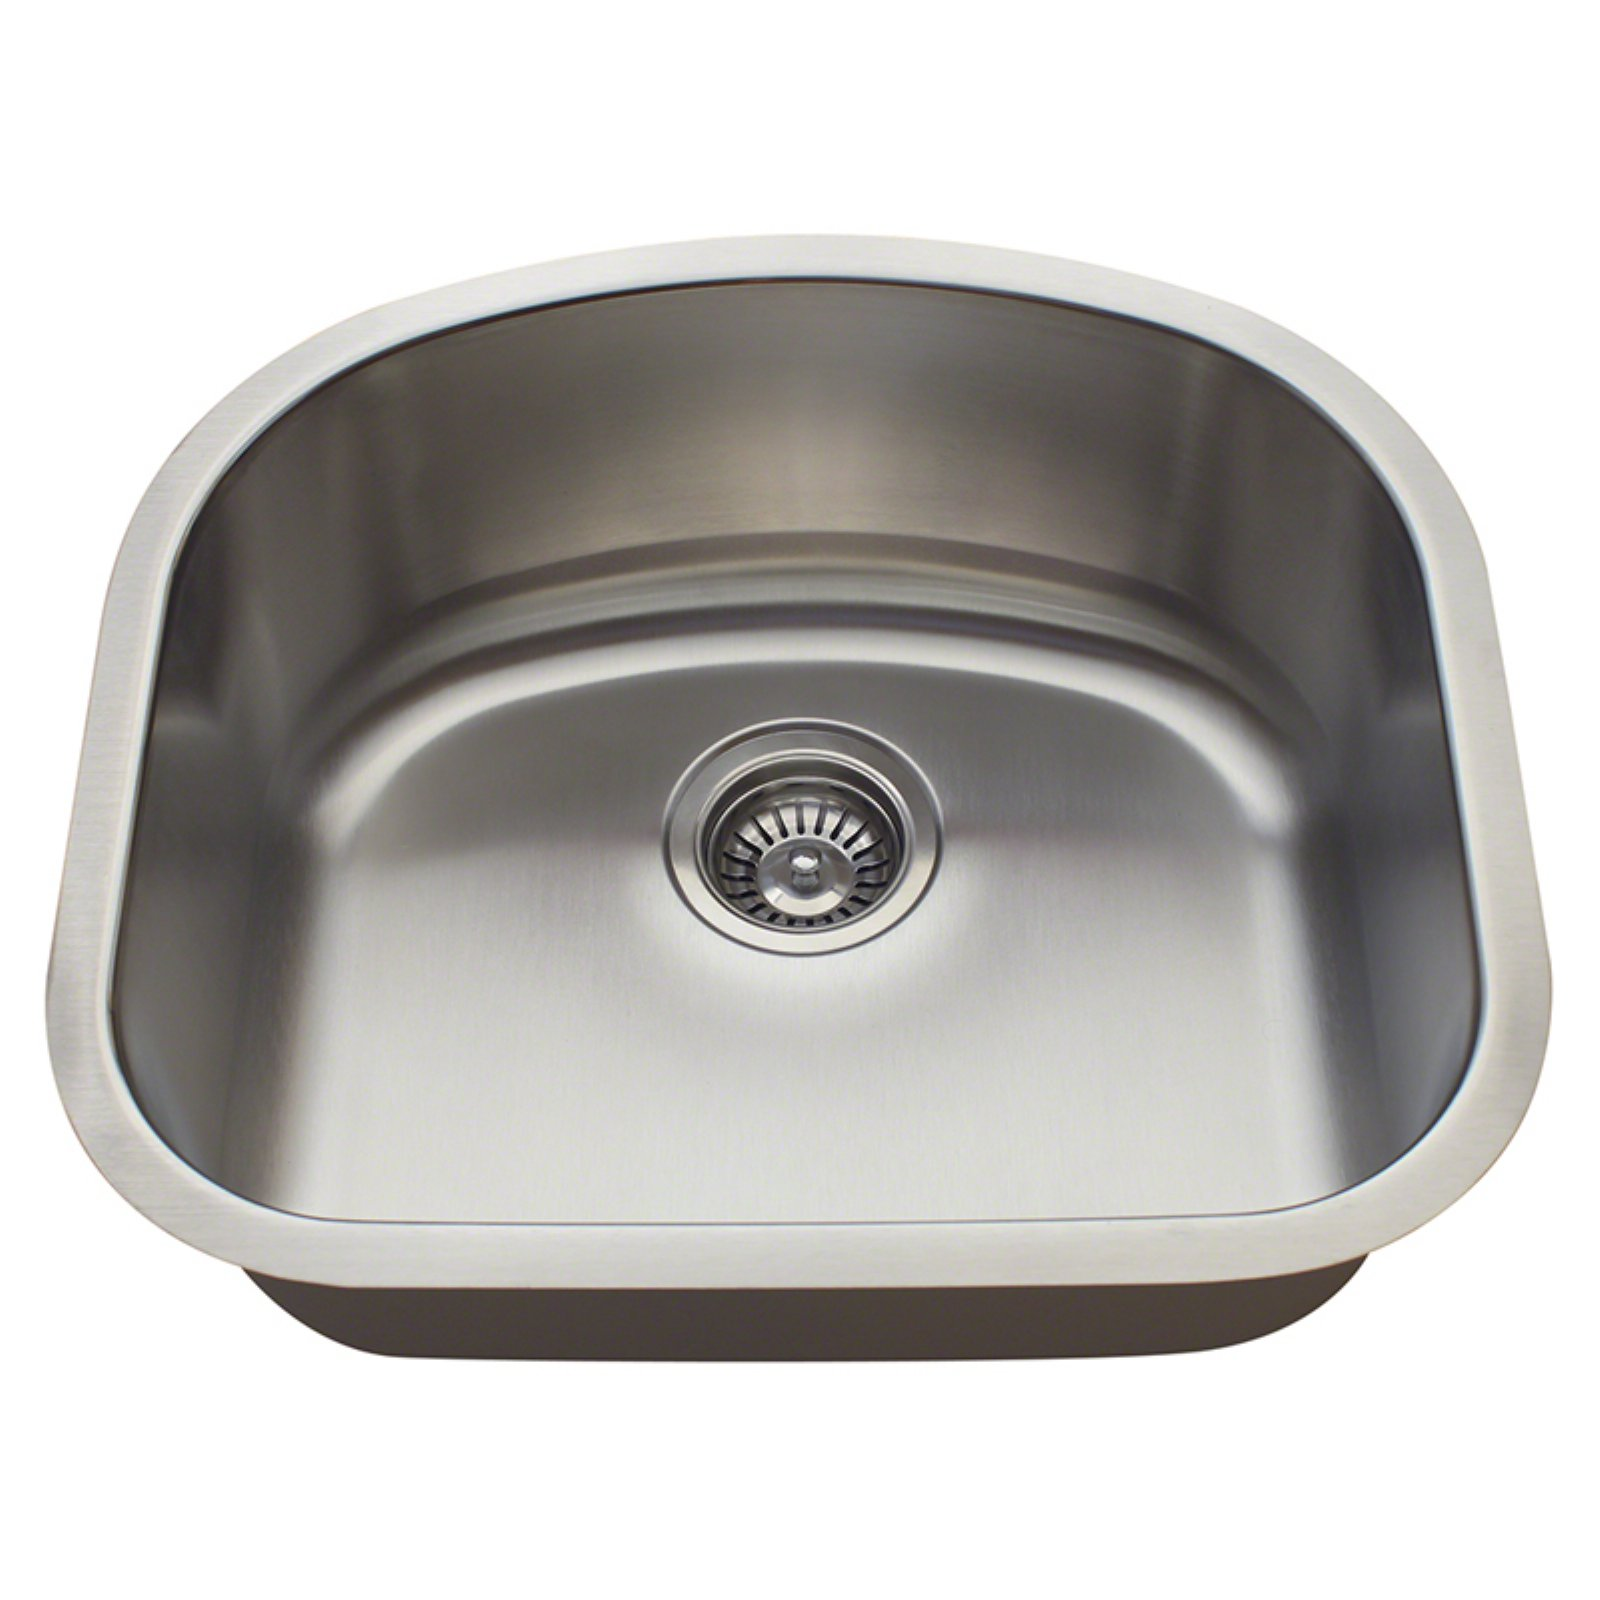 Polaris Sinks P812 Single Basin Undermount Kitchen Sink